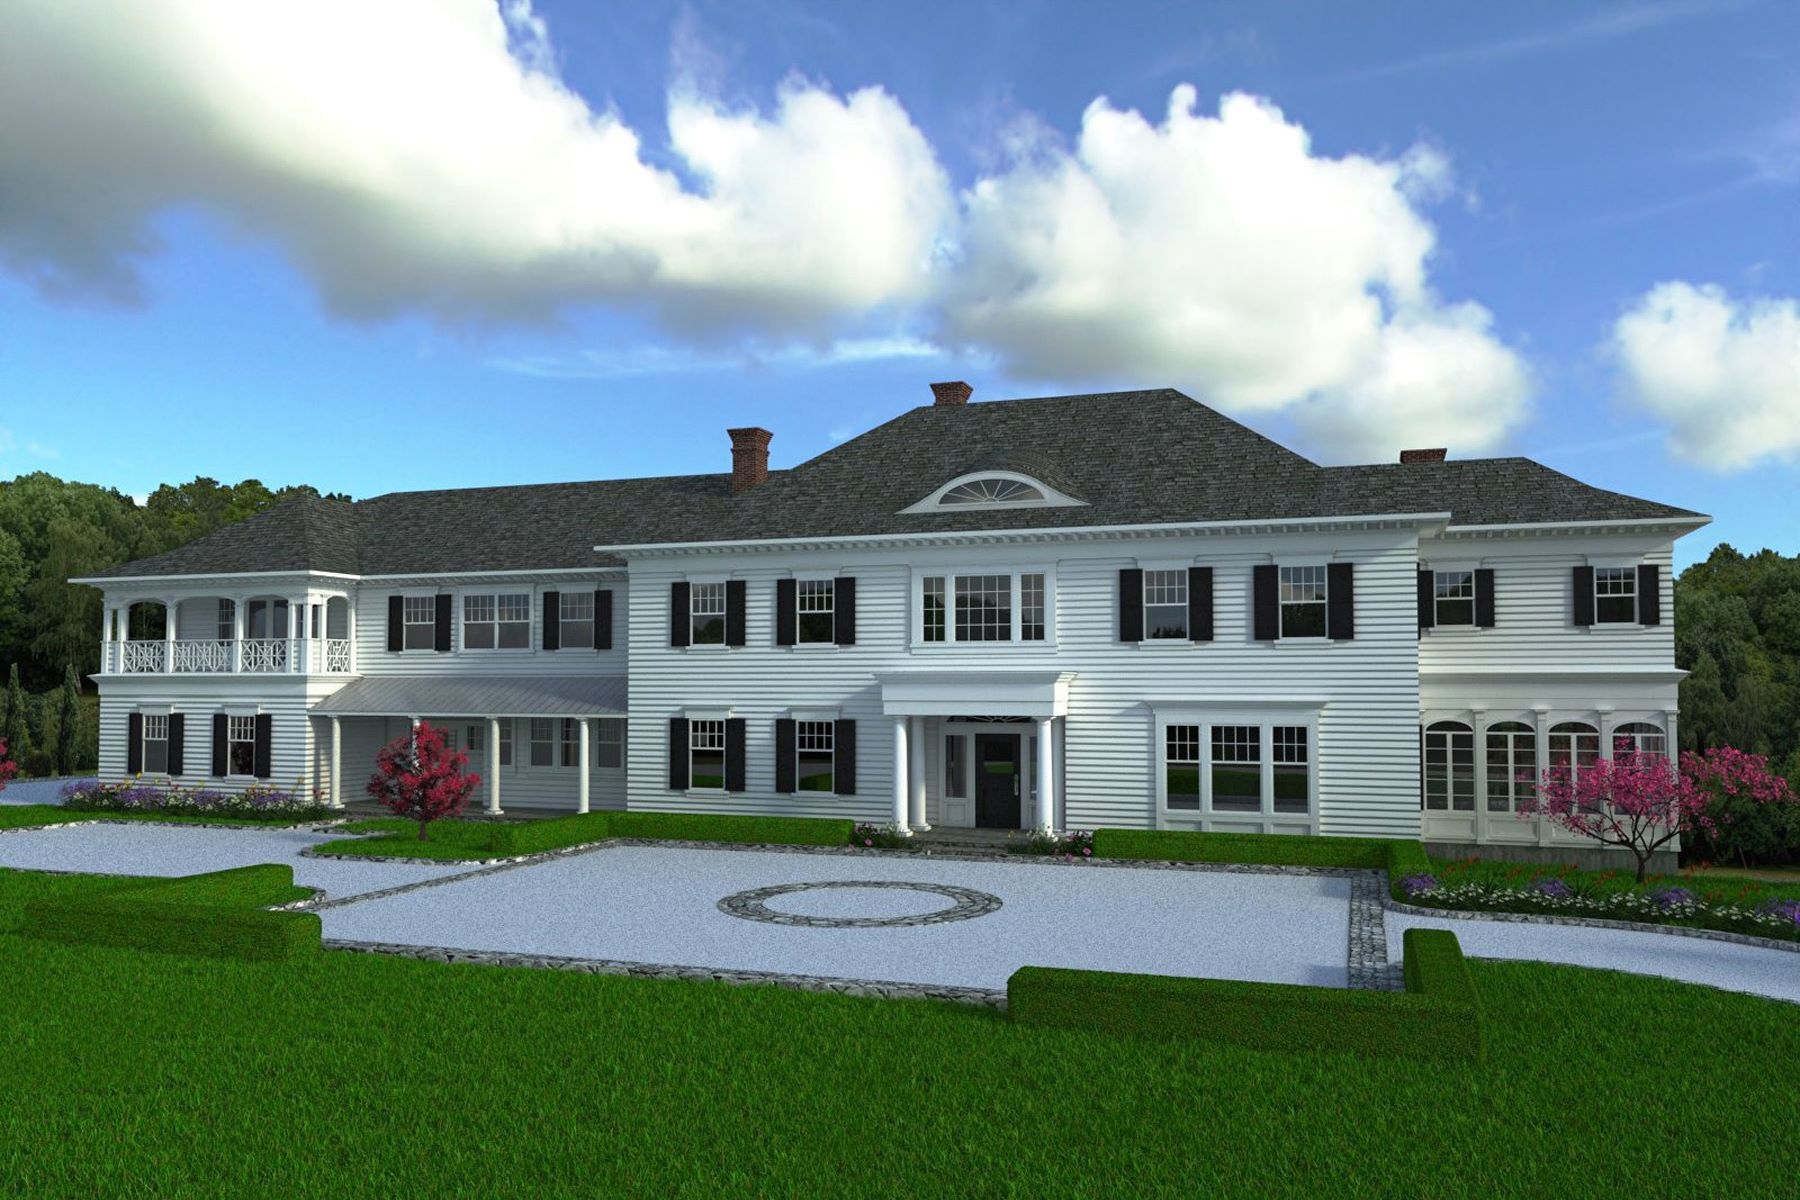 Casa Unifamiliar por un Venta en Refined Elegance and Luxurious Amenities 549 Oenoke Ridge New Canaan, Connecticut, 06840 Estados Unidos